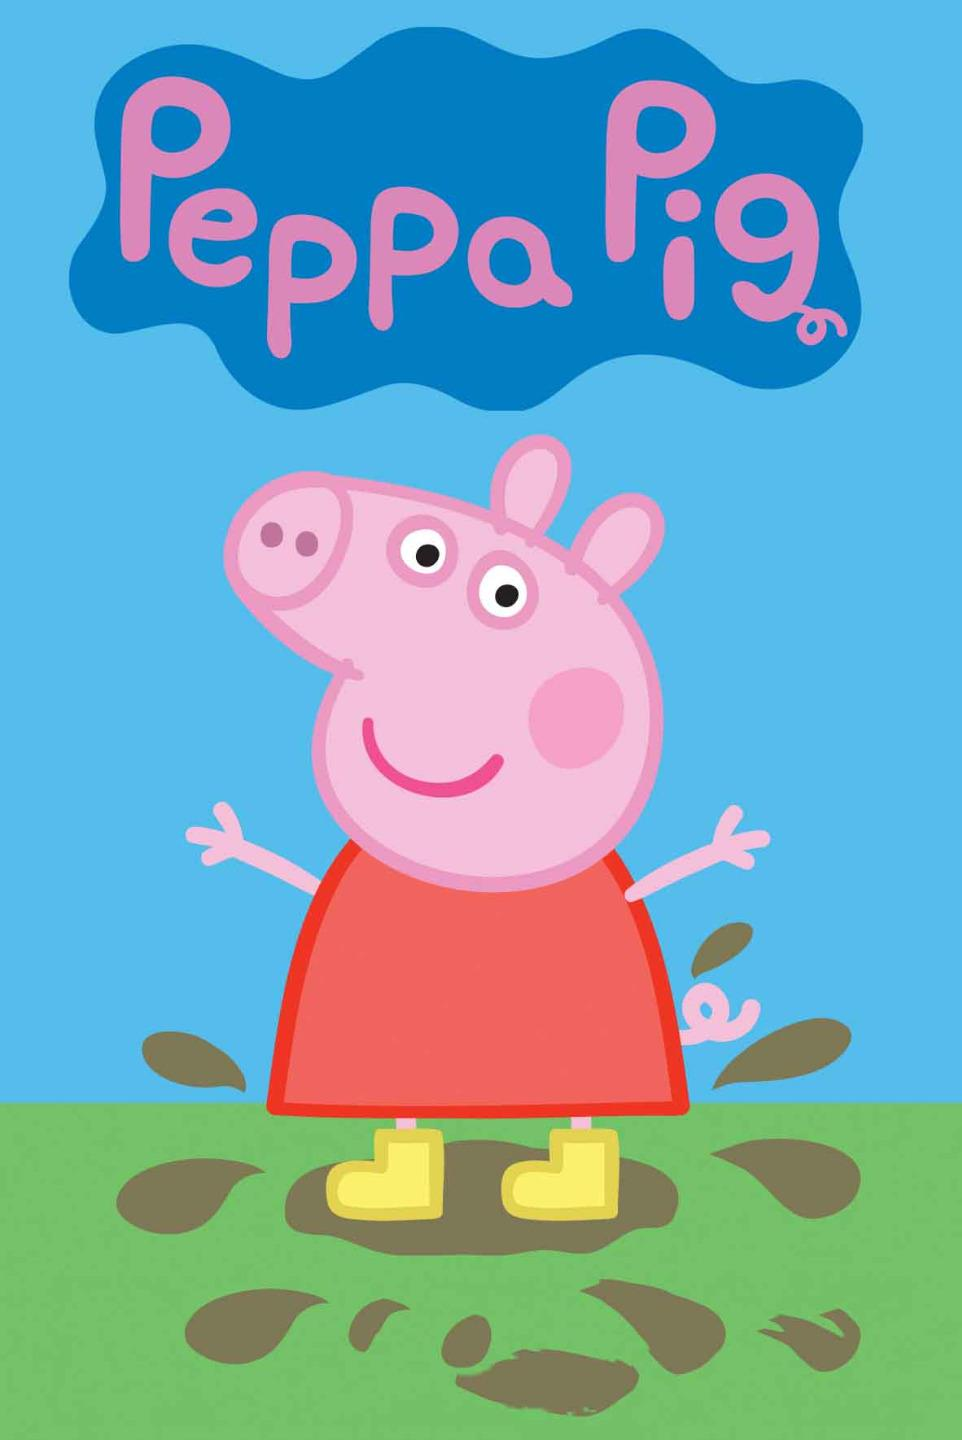 Peppa Pig Bedroom Peppa Pig Kids Bedroom Poster Gift Ideas Sizes A4 To A0 M062